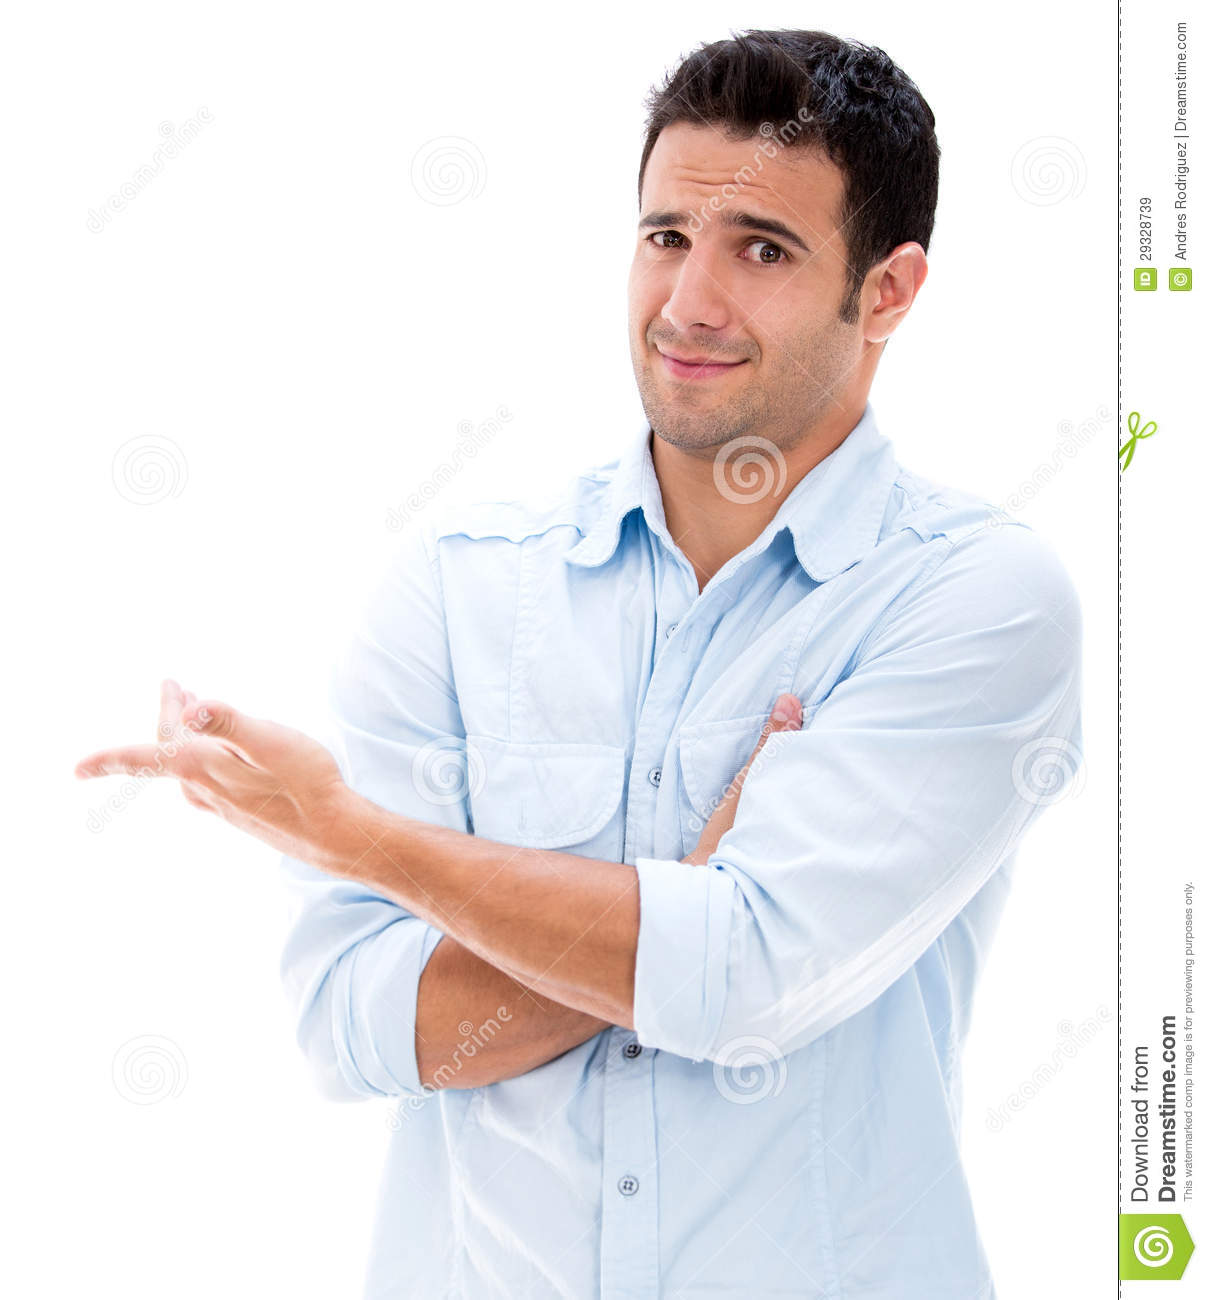 Surprised man making gestures - isolated over a white background.